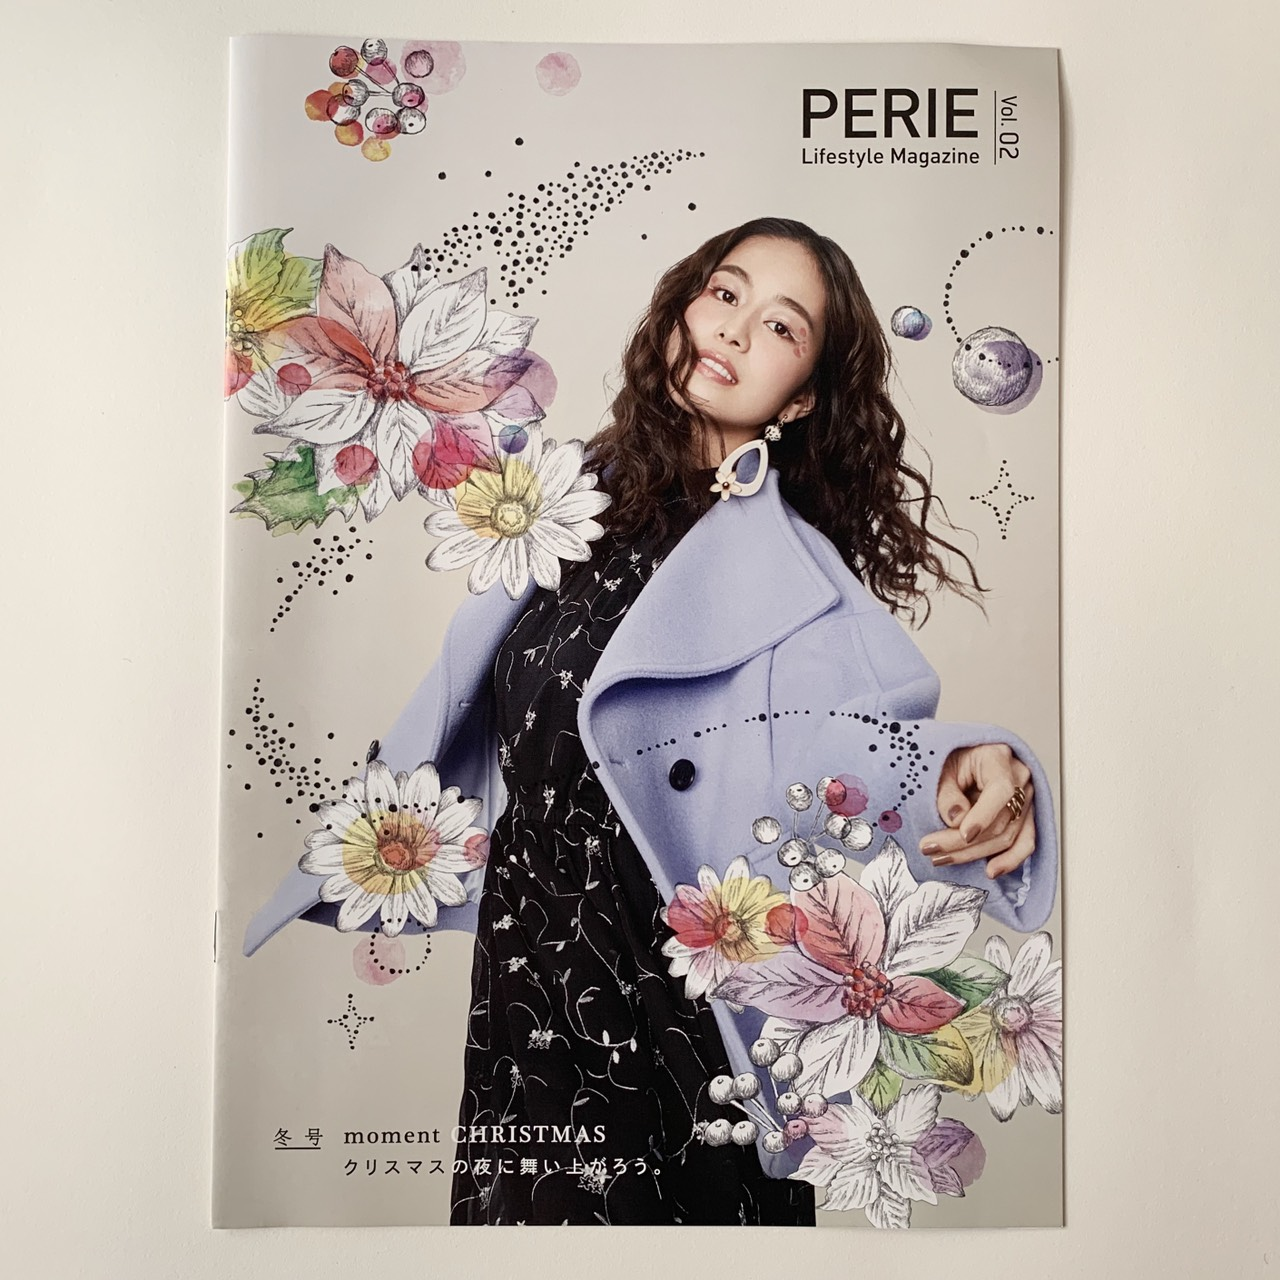 PERIE Lifestyle Magazine Vol.2